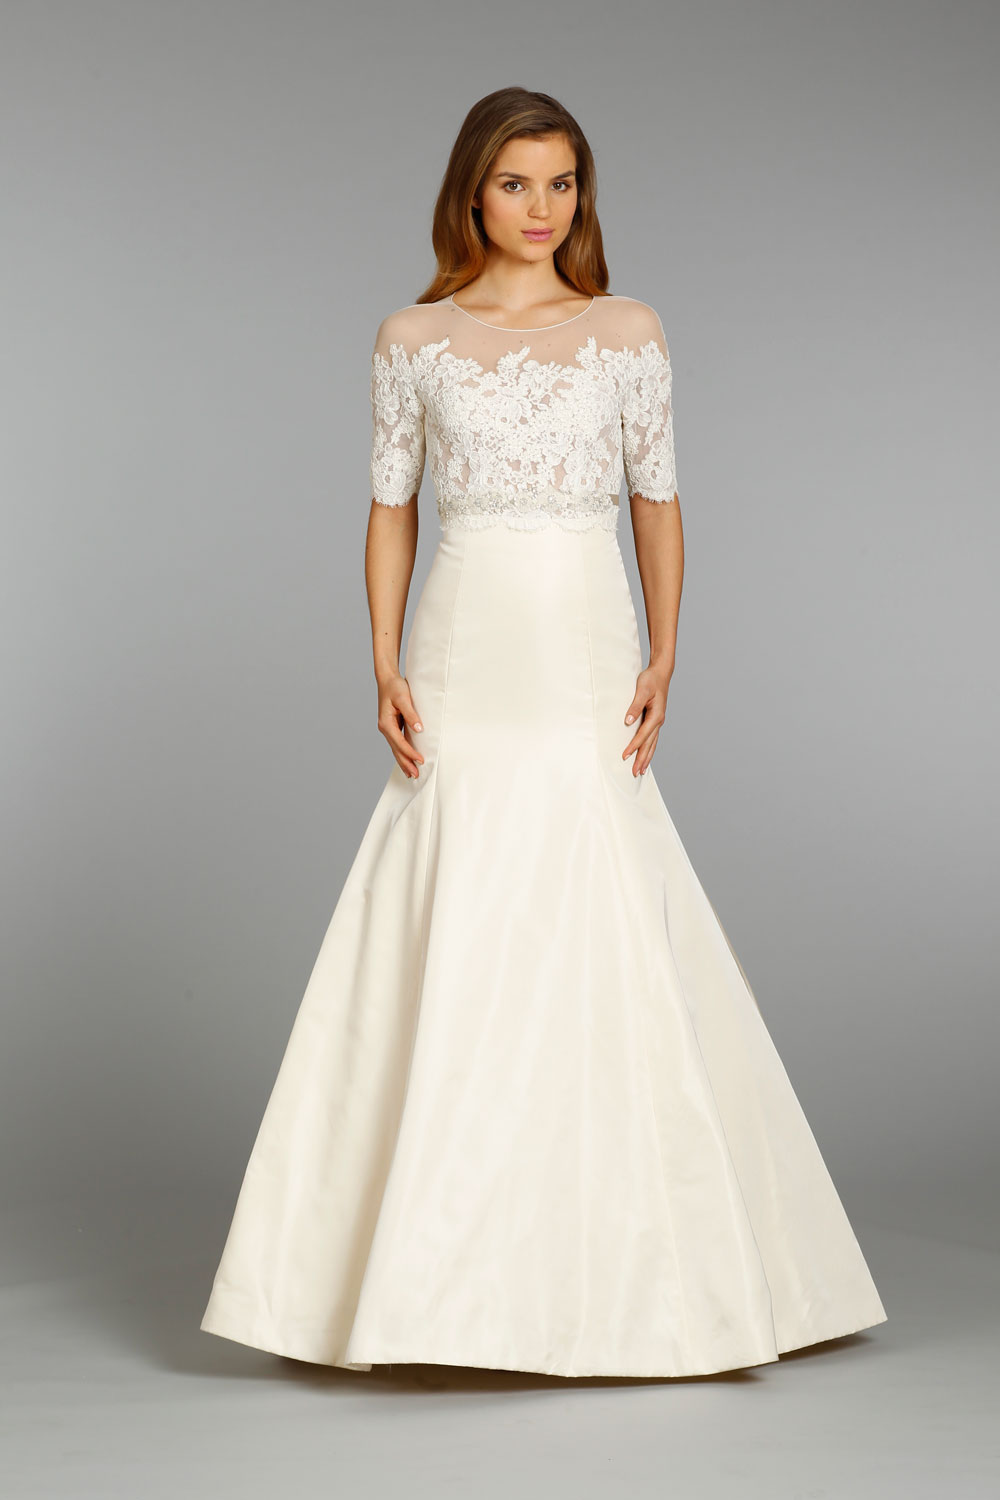 Jim hjelm wedding dress fall 2013 bridal 8360 for Jim hjelm wedding dresses